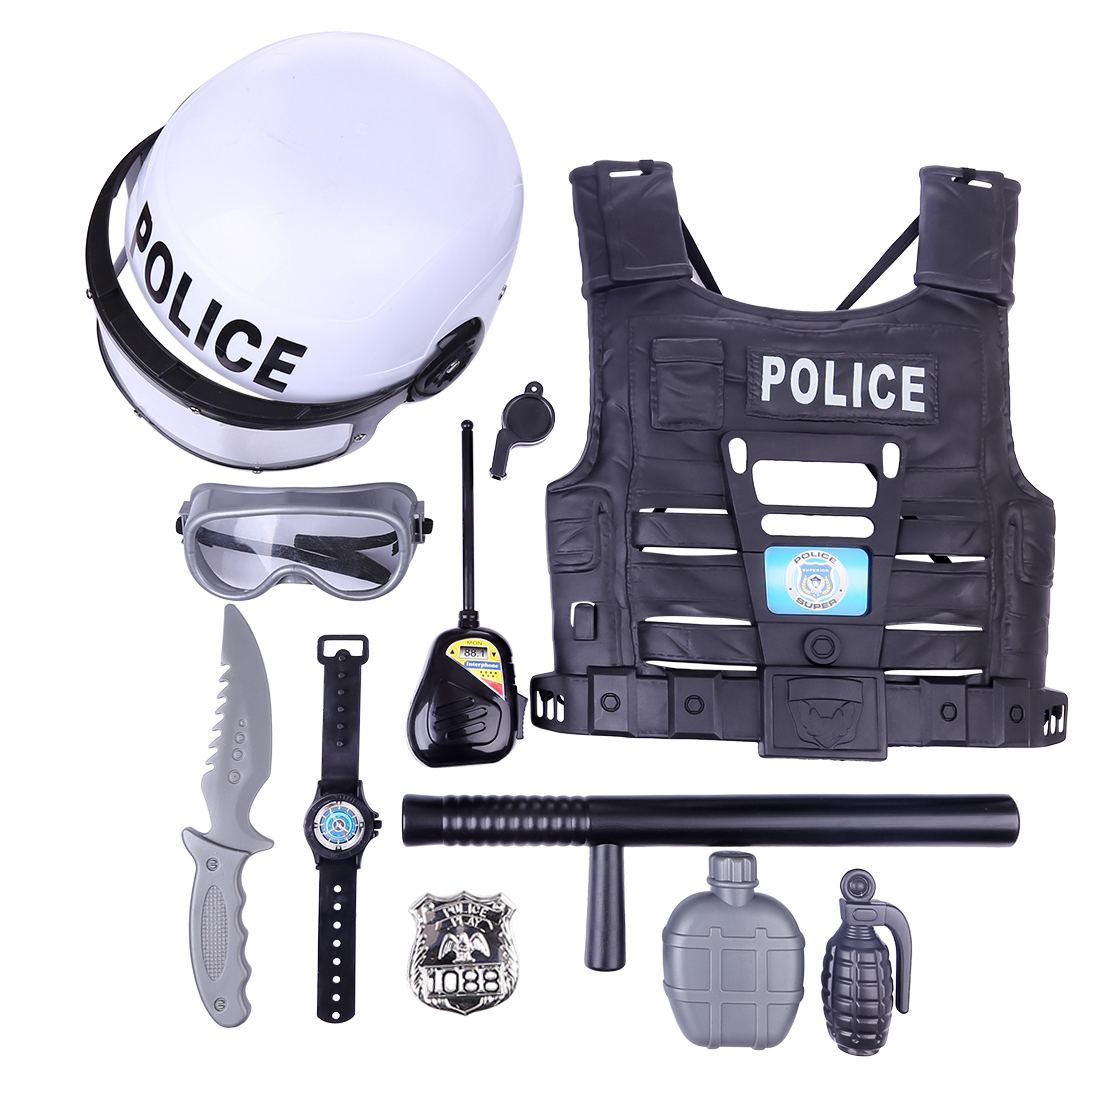 17.45US $ 5% OFF New Popular 11Pcs Children Pretend Play Toys Simulation Policeman Role Play Kits fo...